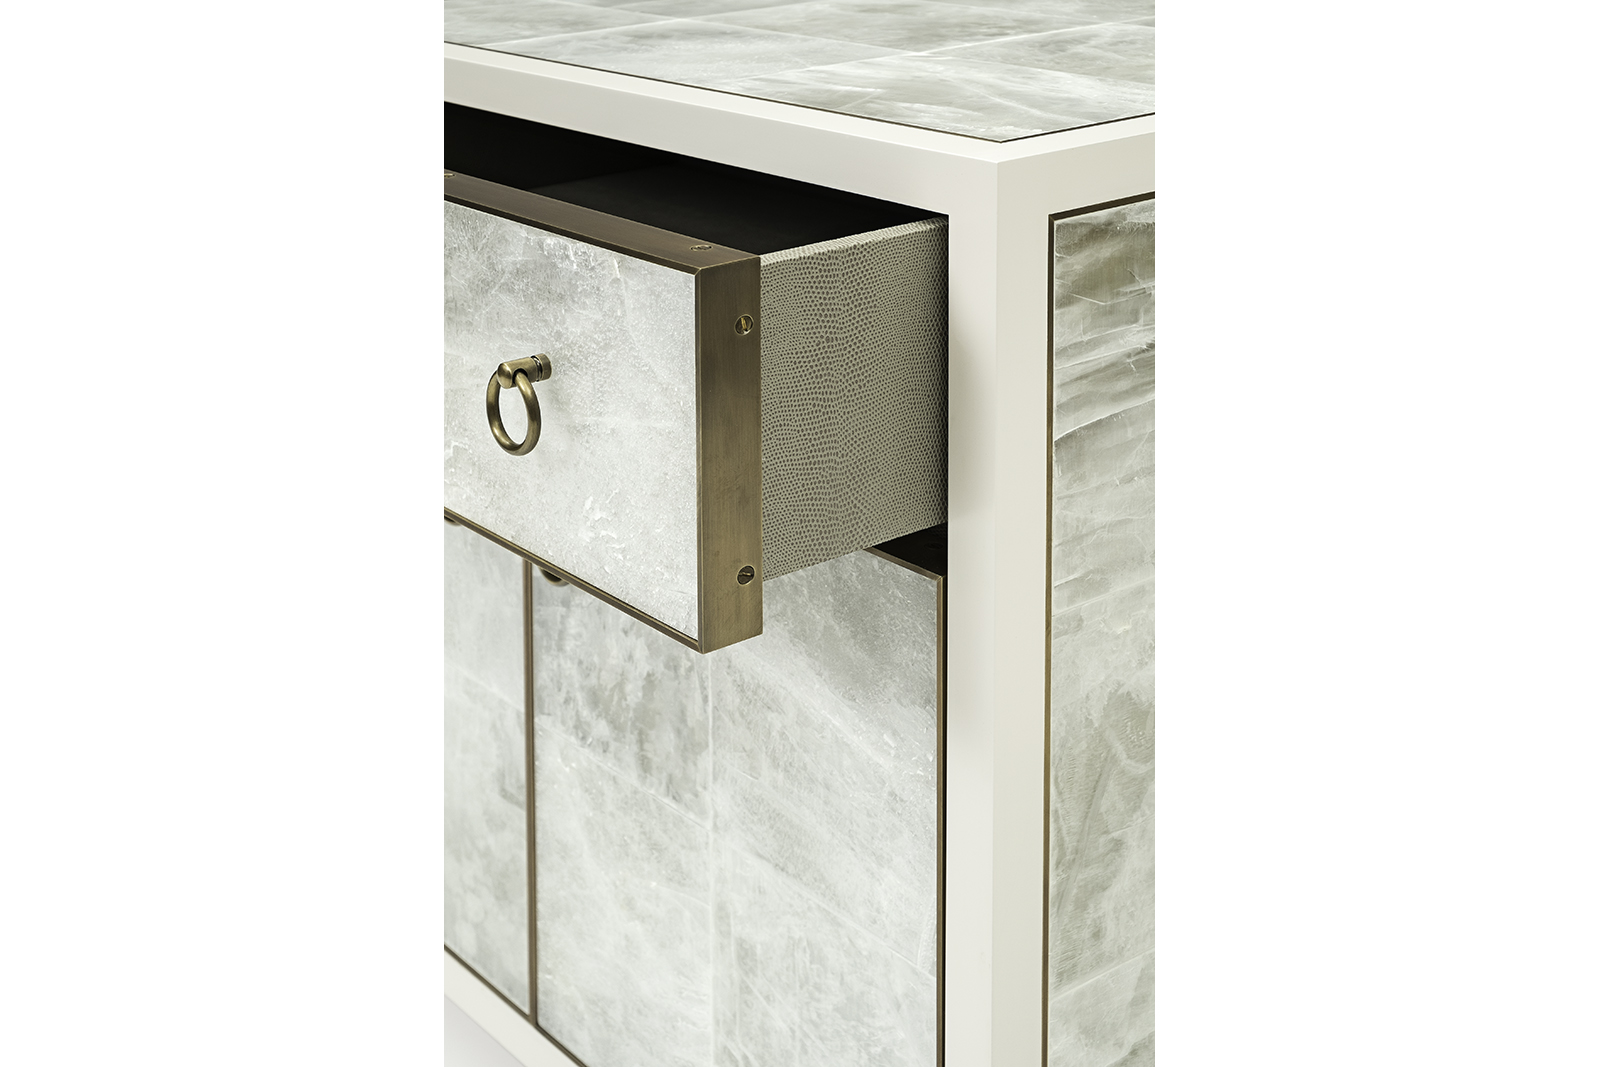 Bedside Table in Gypsum & White Lacquer